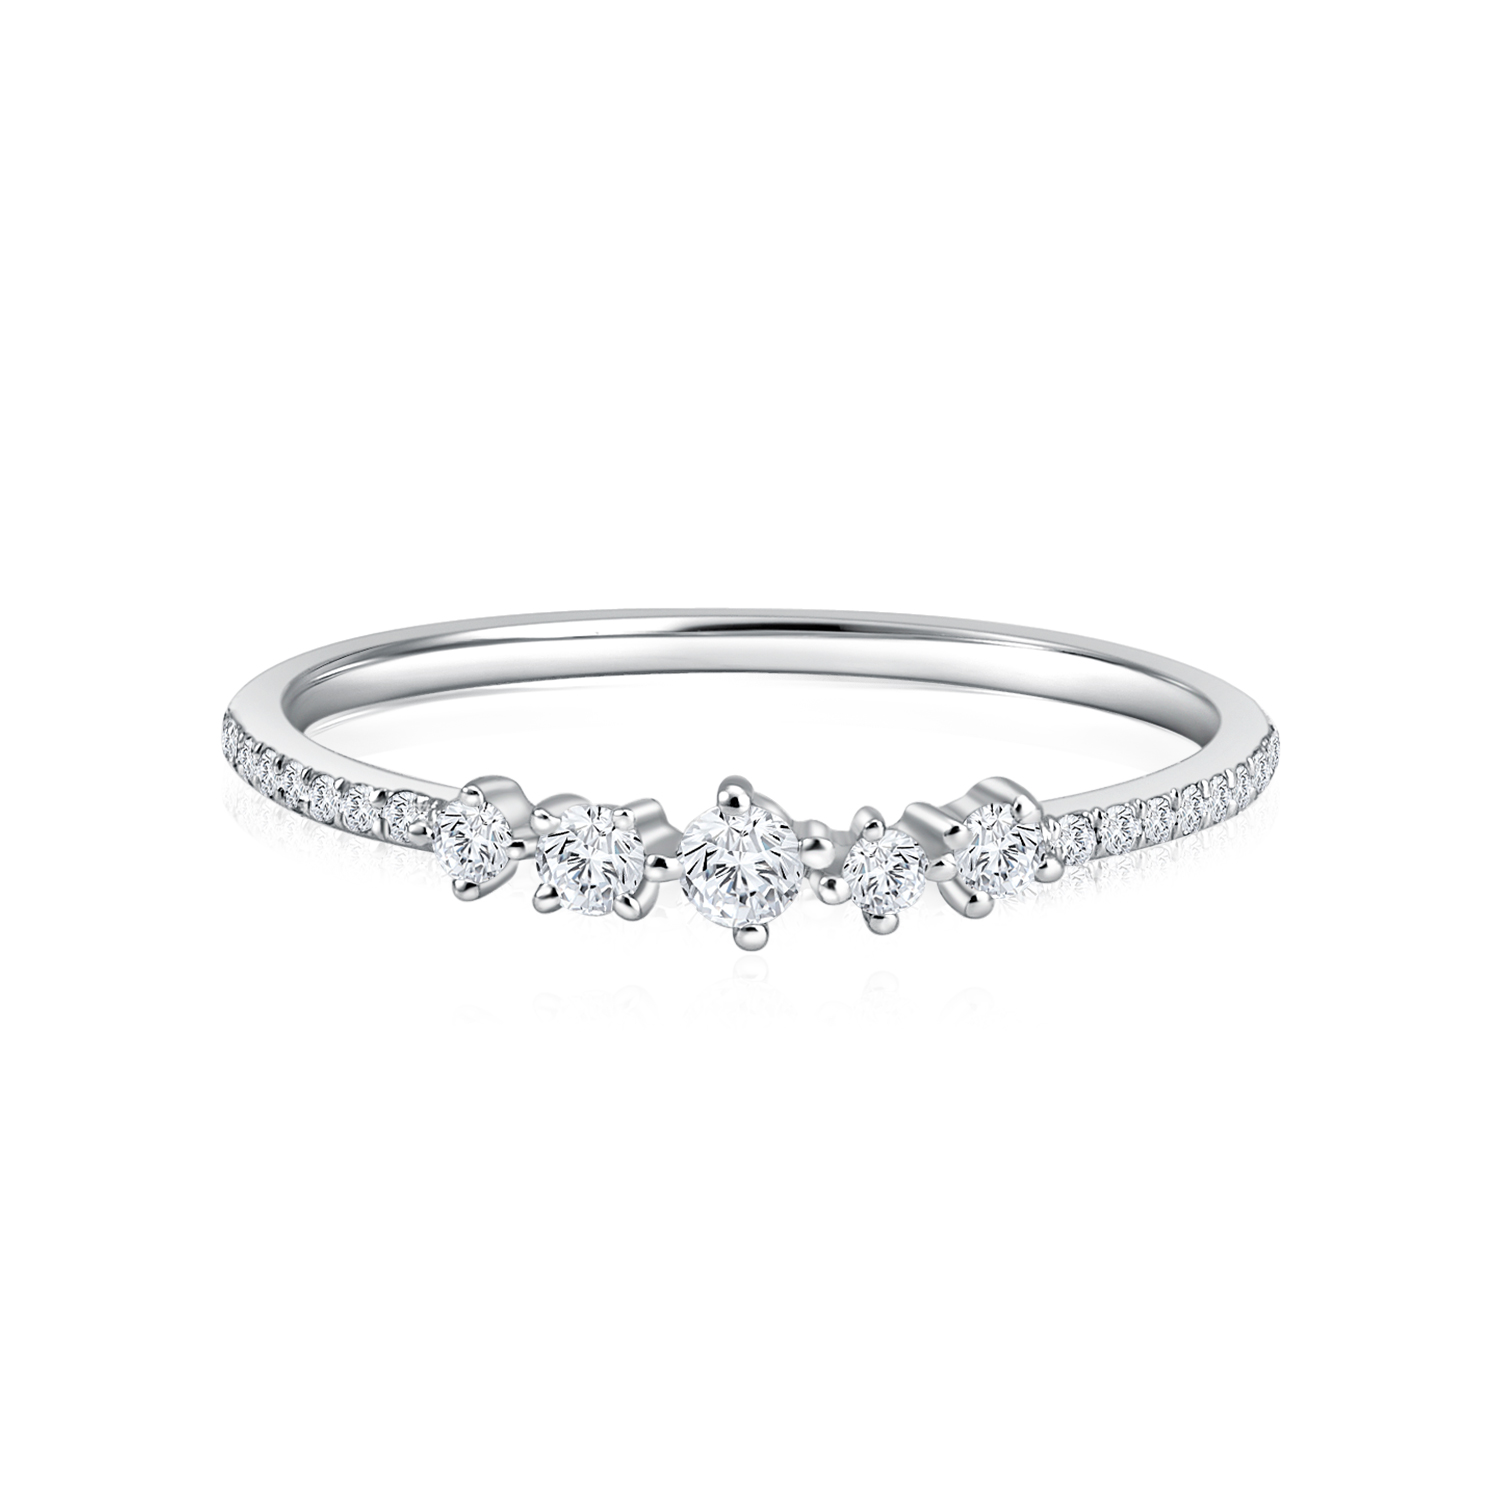 Starry Gema White Gold Diamond Ring